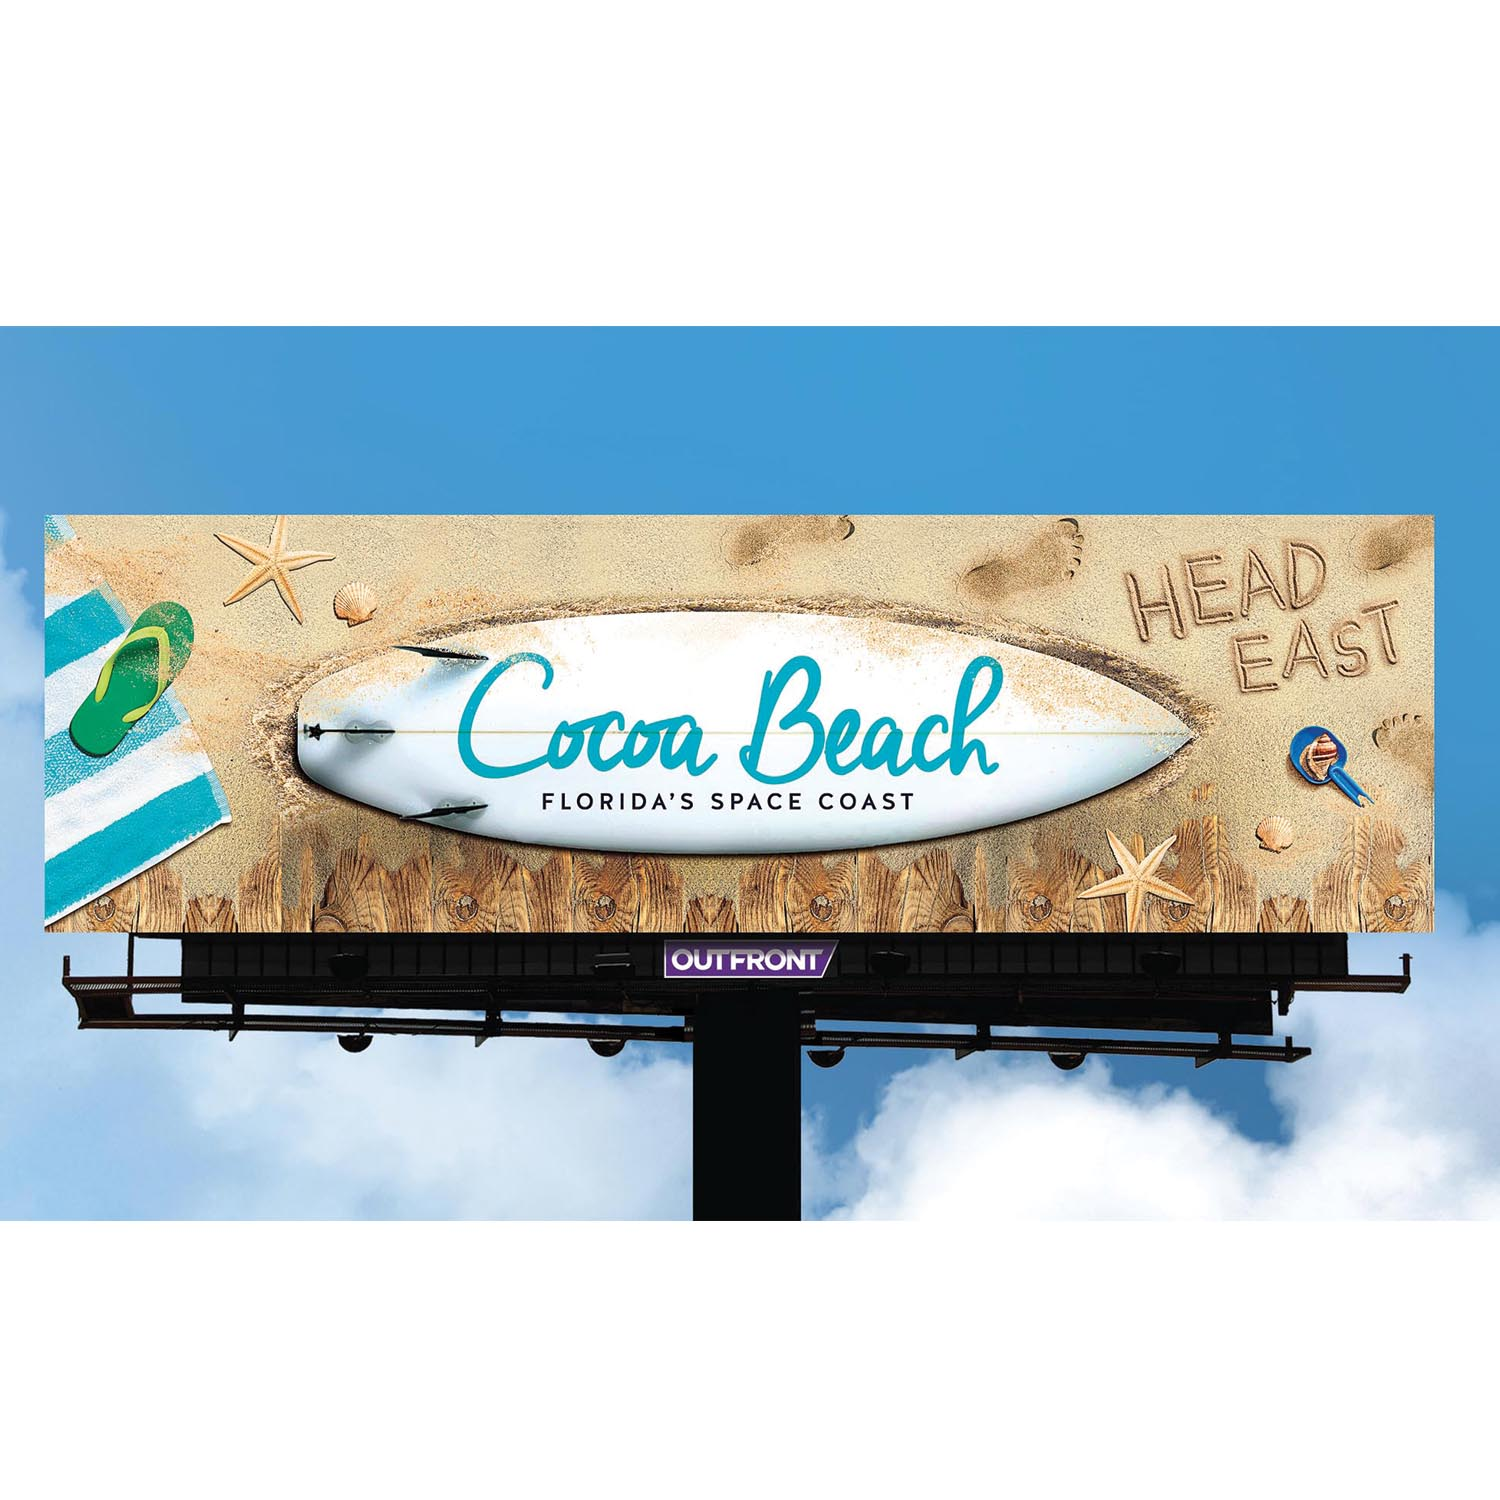 Coco Beach Surfboard Creative